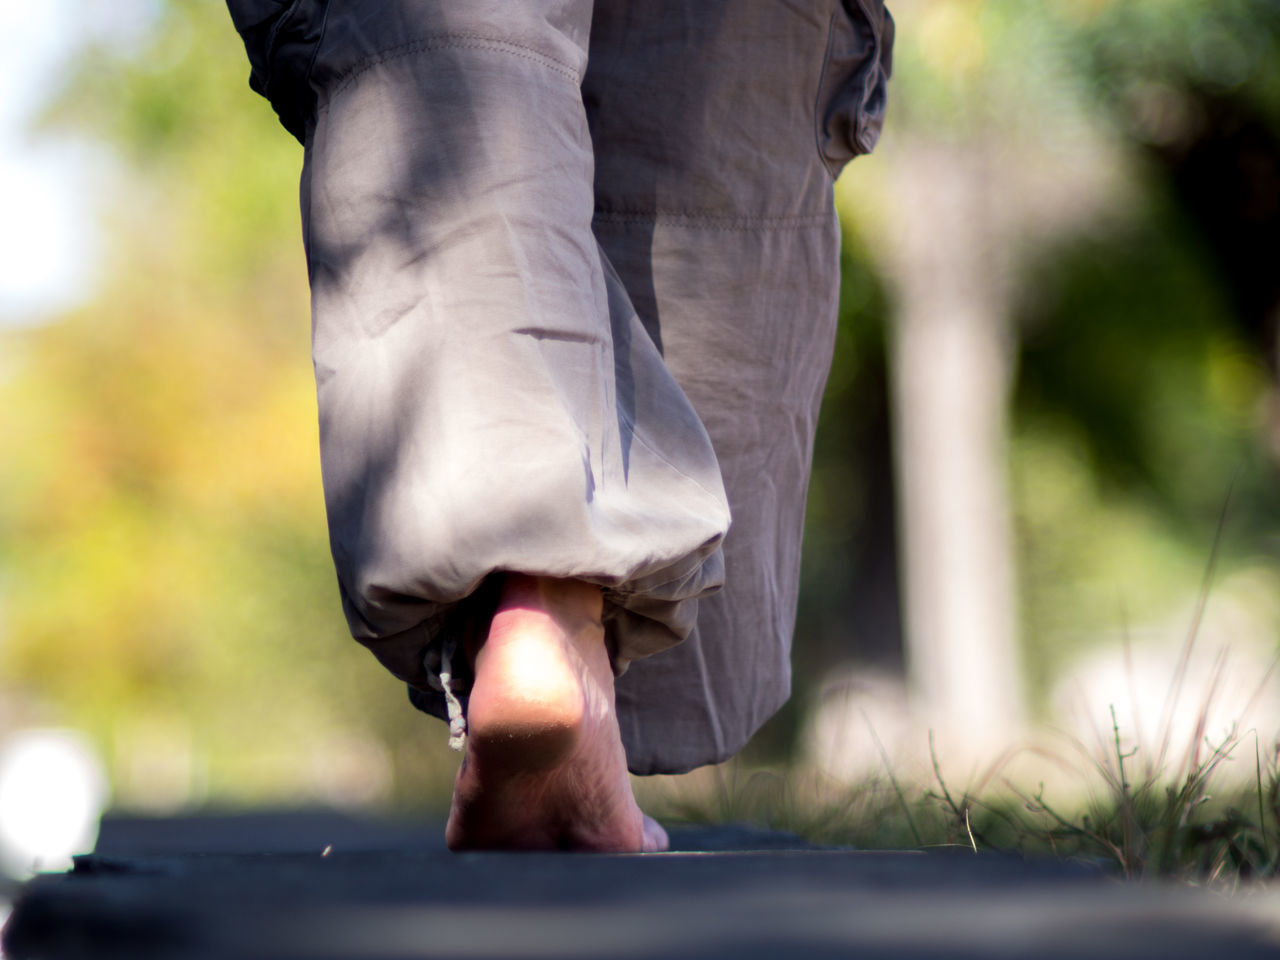 Close-up Crimea Day Foot Gawlet Human Body Part One Person Outdoors People Russia Sevastopol